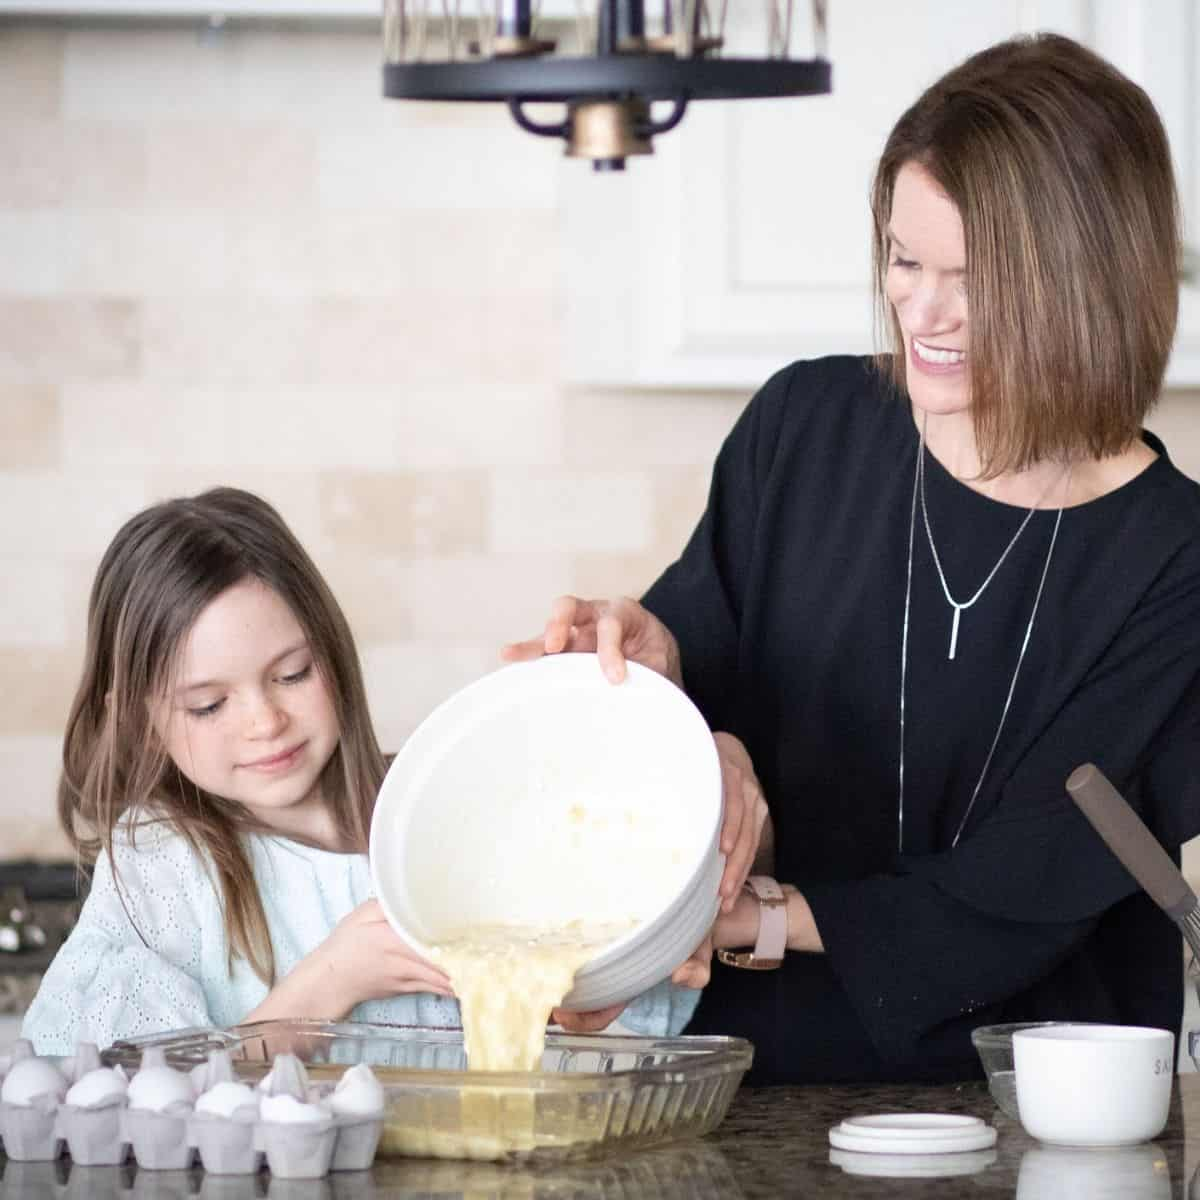 Mom and daughter pouring batter into pan together.